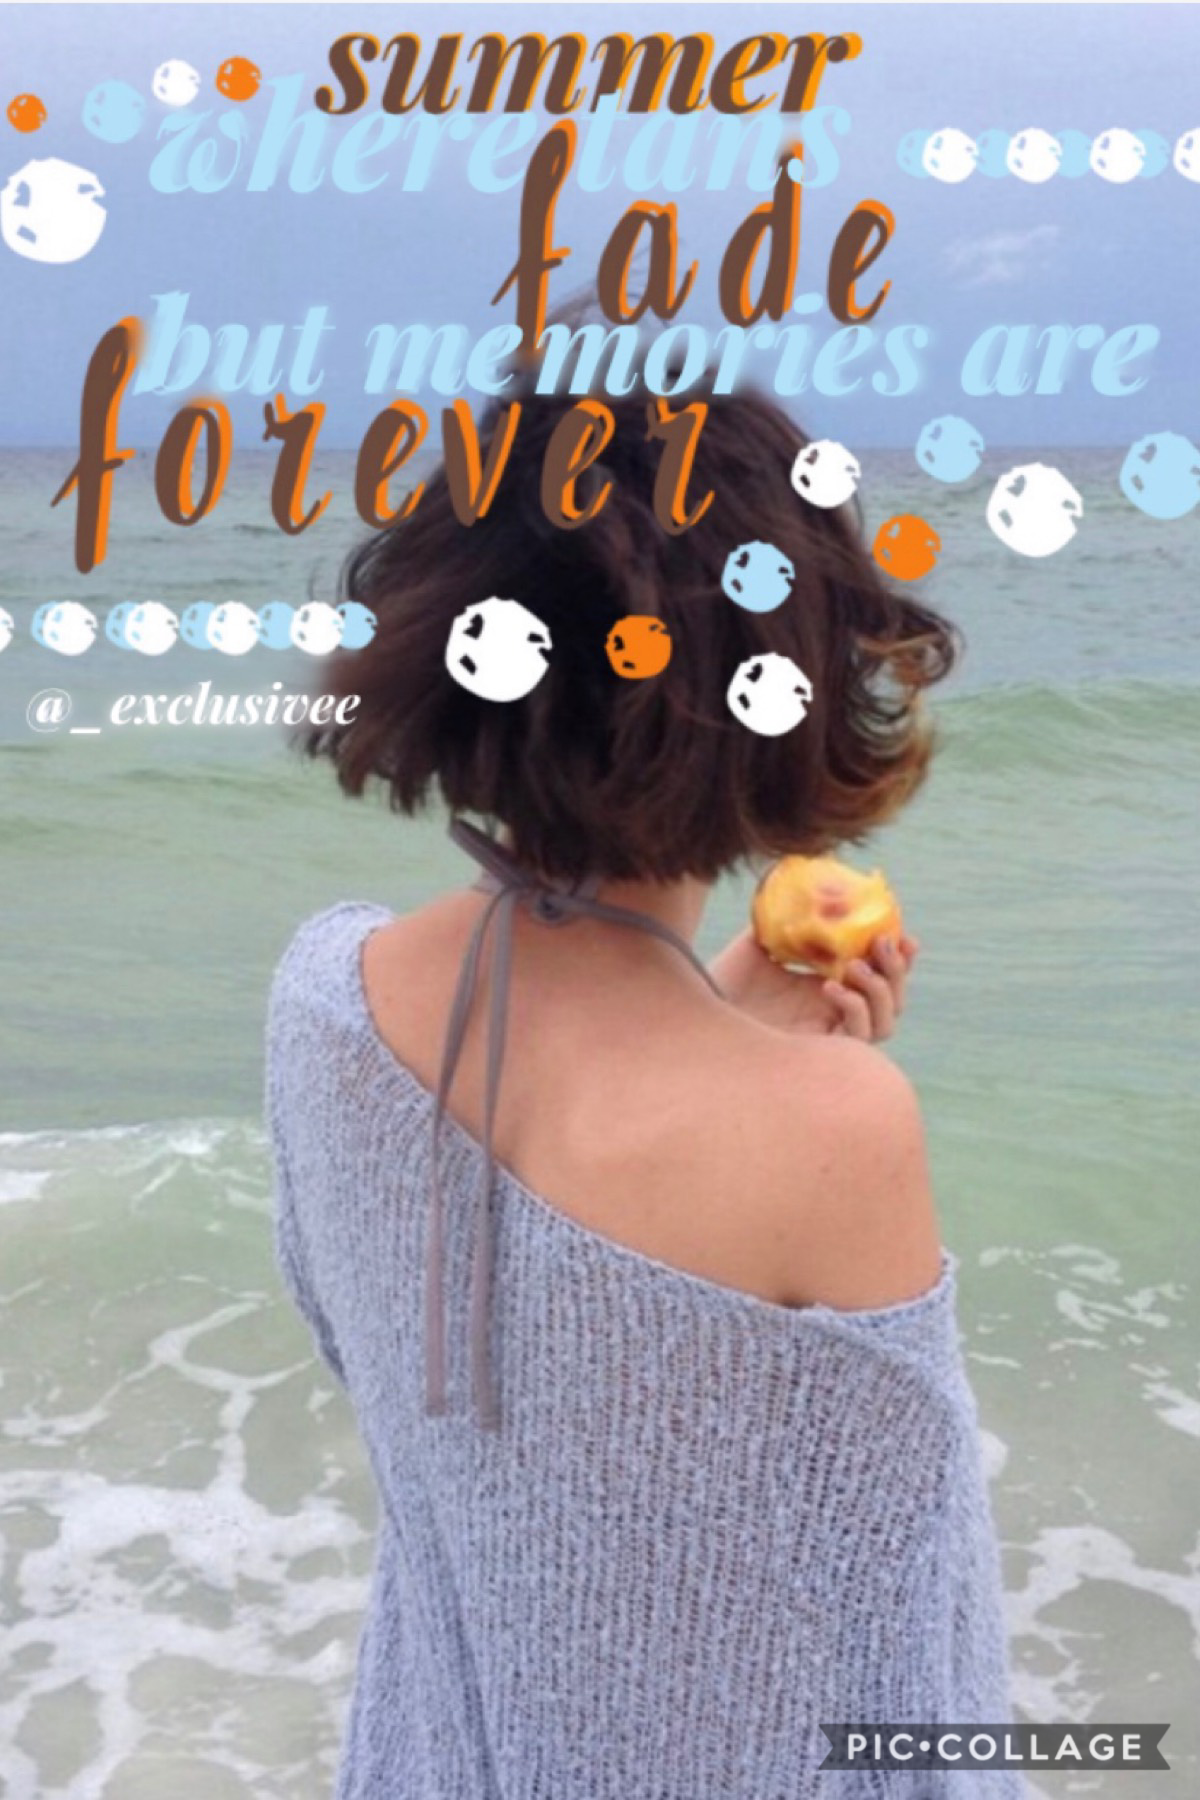 """🦋 Tap 🦋 Quote: """"Summer, where tans fade but memories are forever""""  Originally this collage was for another contest but I just thought I would put it here 🤷🏽♀️"""